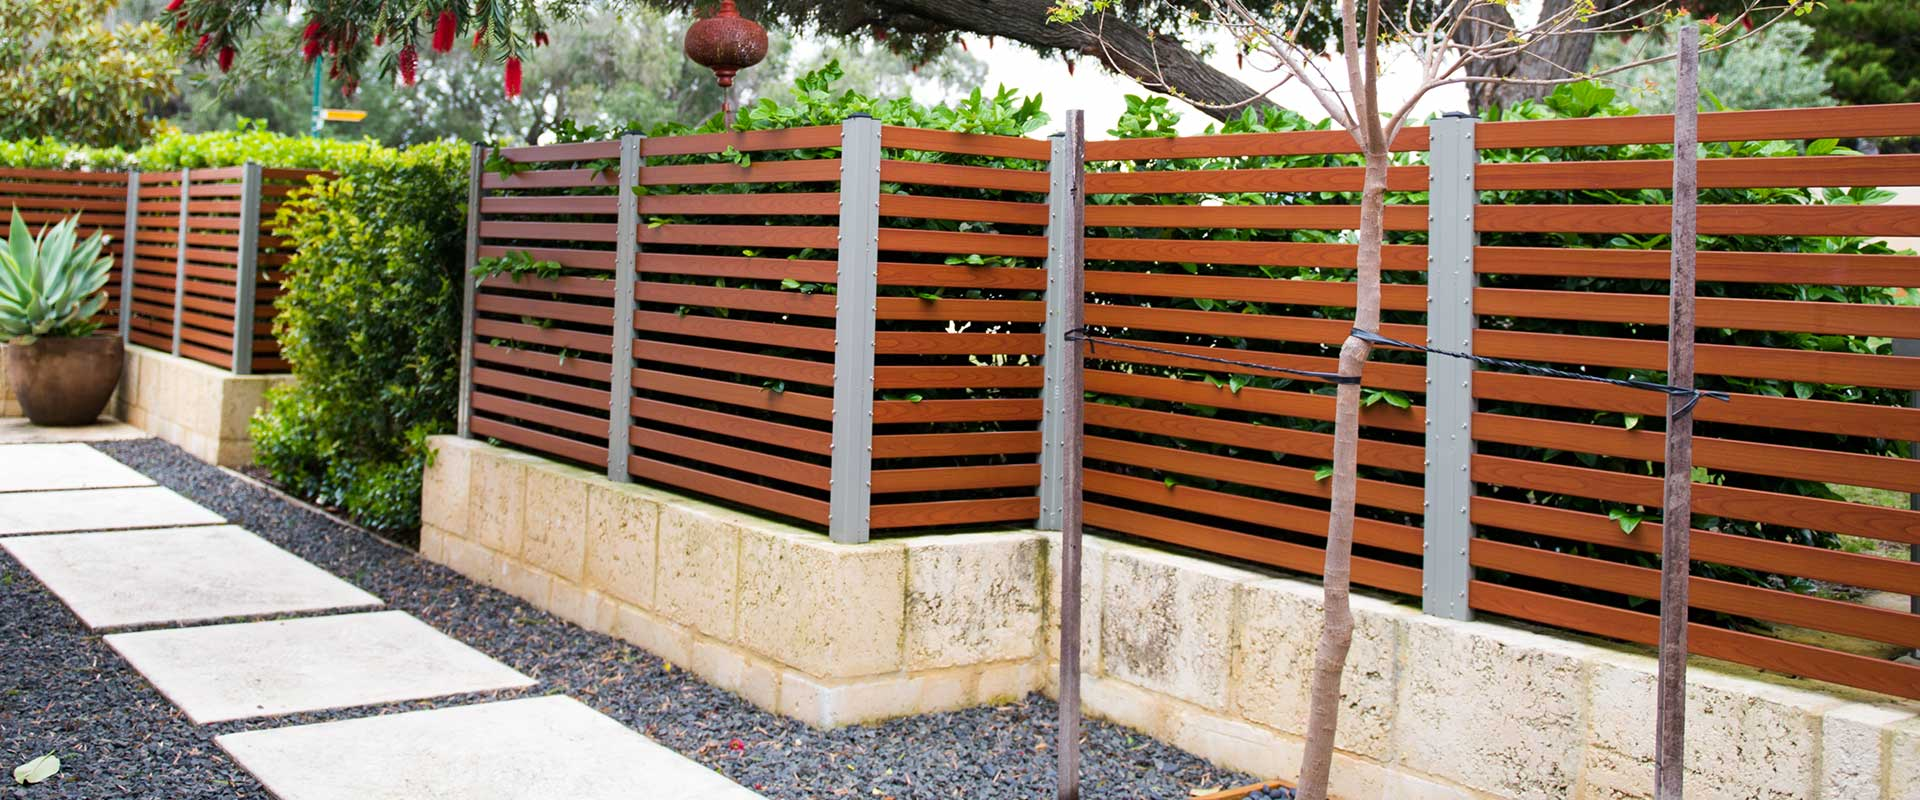 how to make a fence higher for privacy